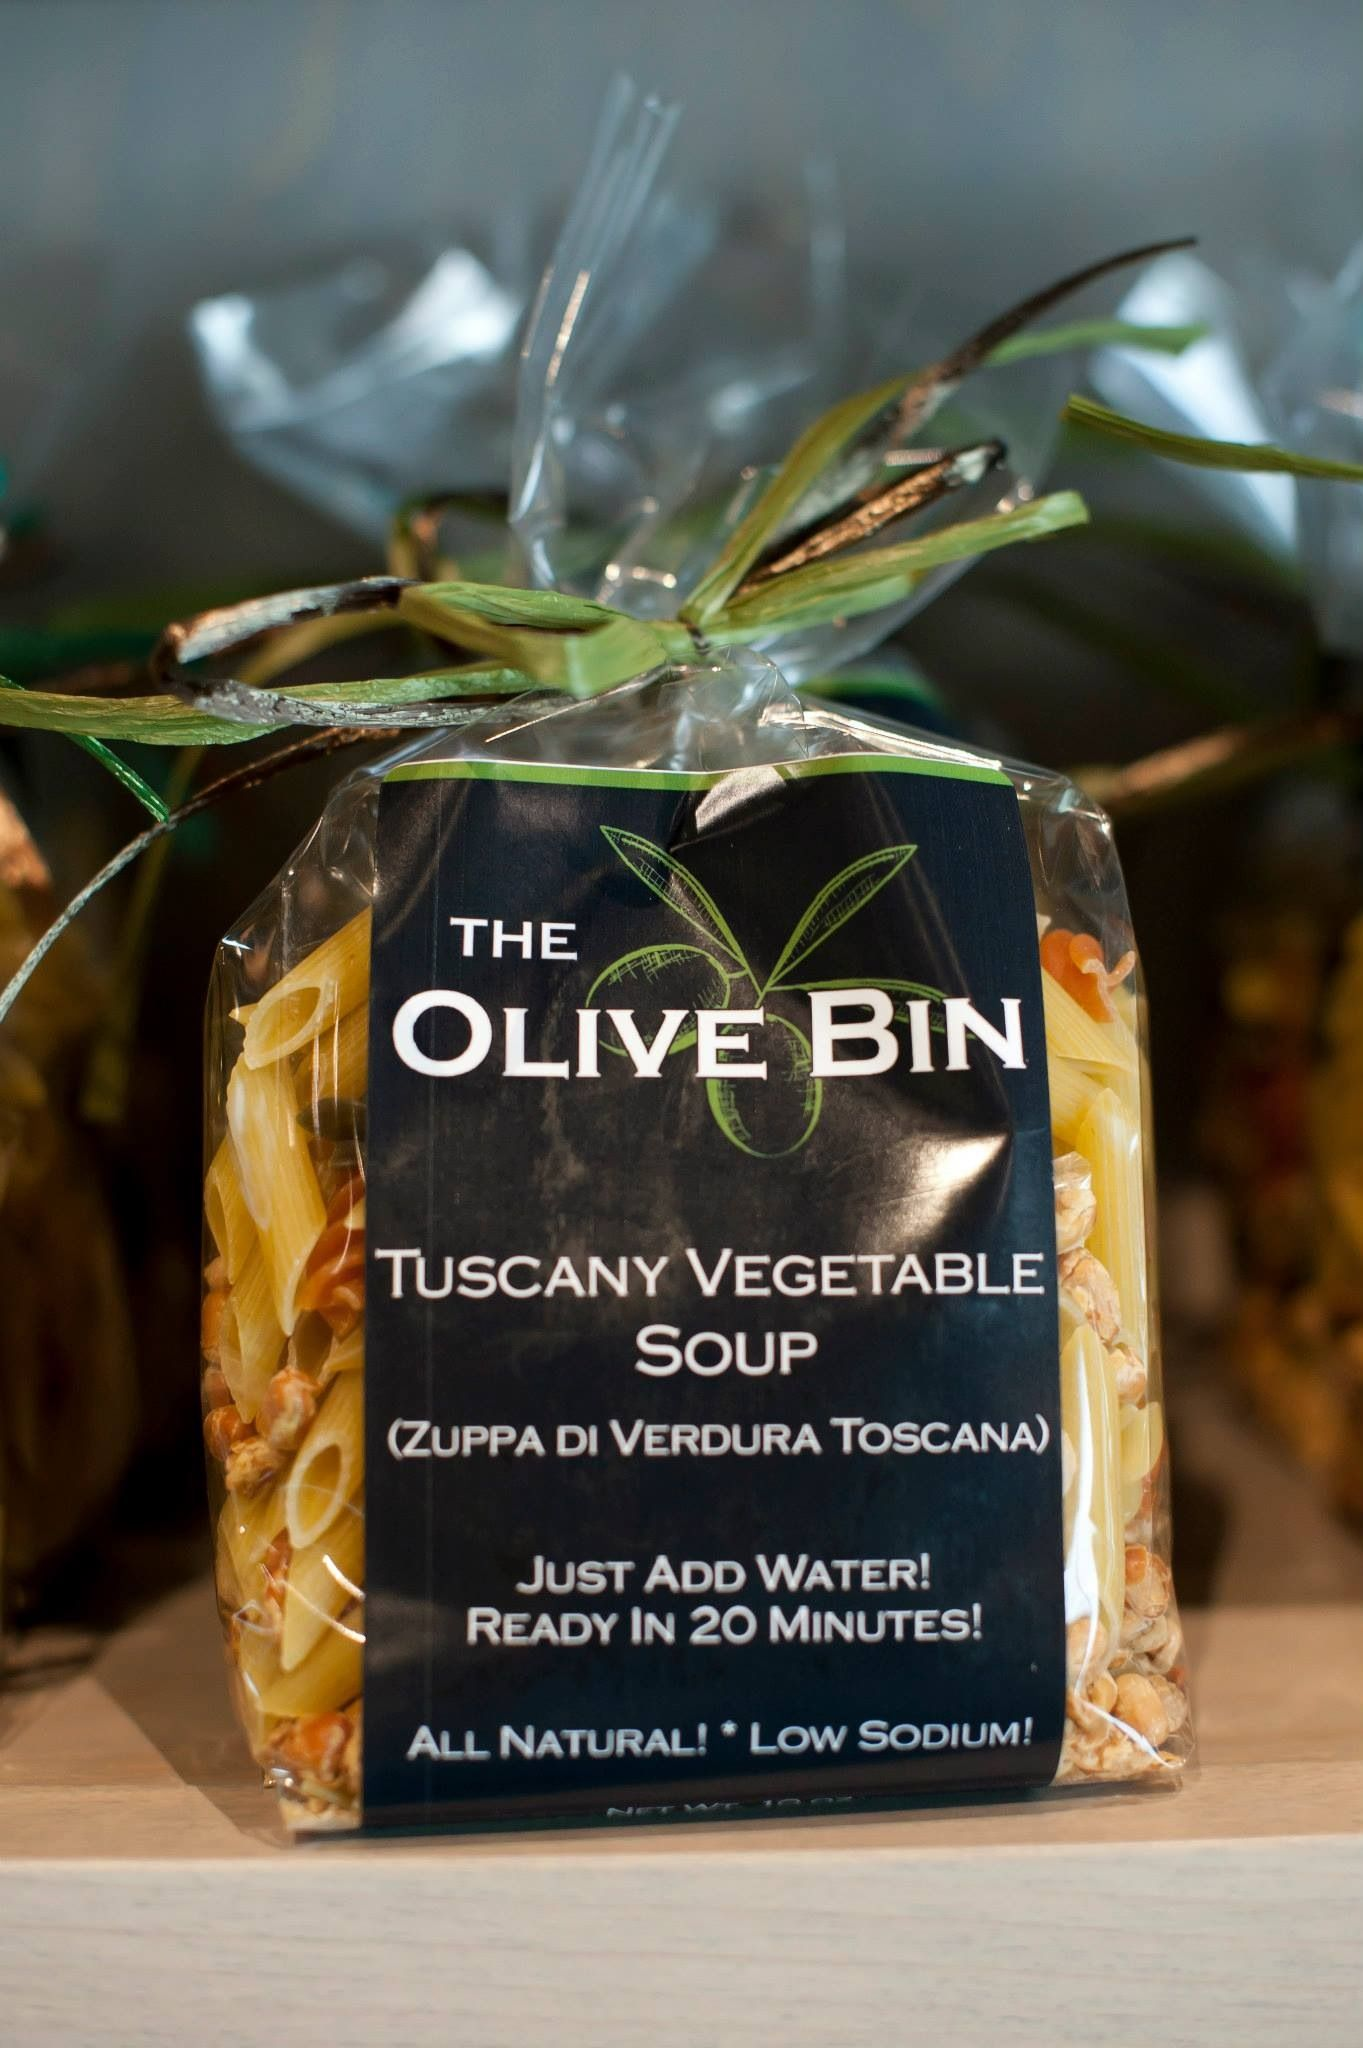 Great for a chilly fall evening - soup and salad supper.! I'm topping my salad with a vinaigrette made with The Olive Bin 18 Year Traditional Balsamic paired with Tuscan Herb Olive Oil